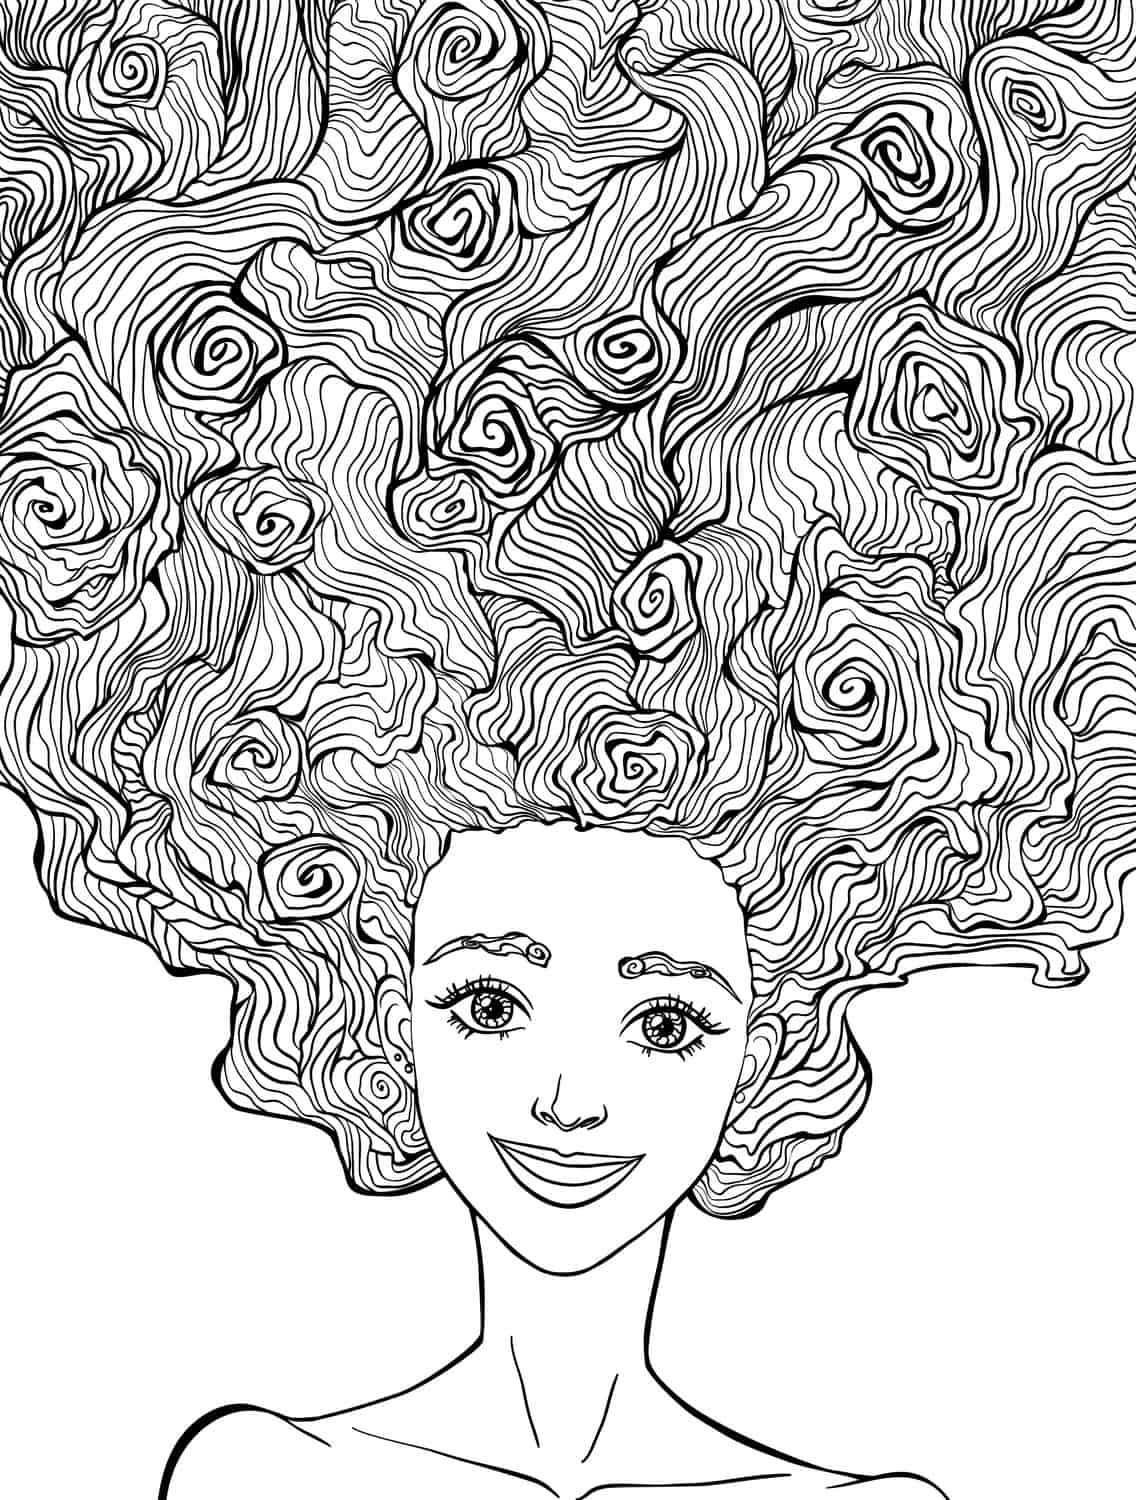 10 Crazy Hair Adult Coloring Pages - Page 10 of 12 - Nerdy Mamma